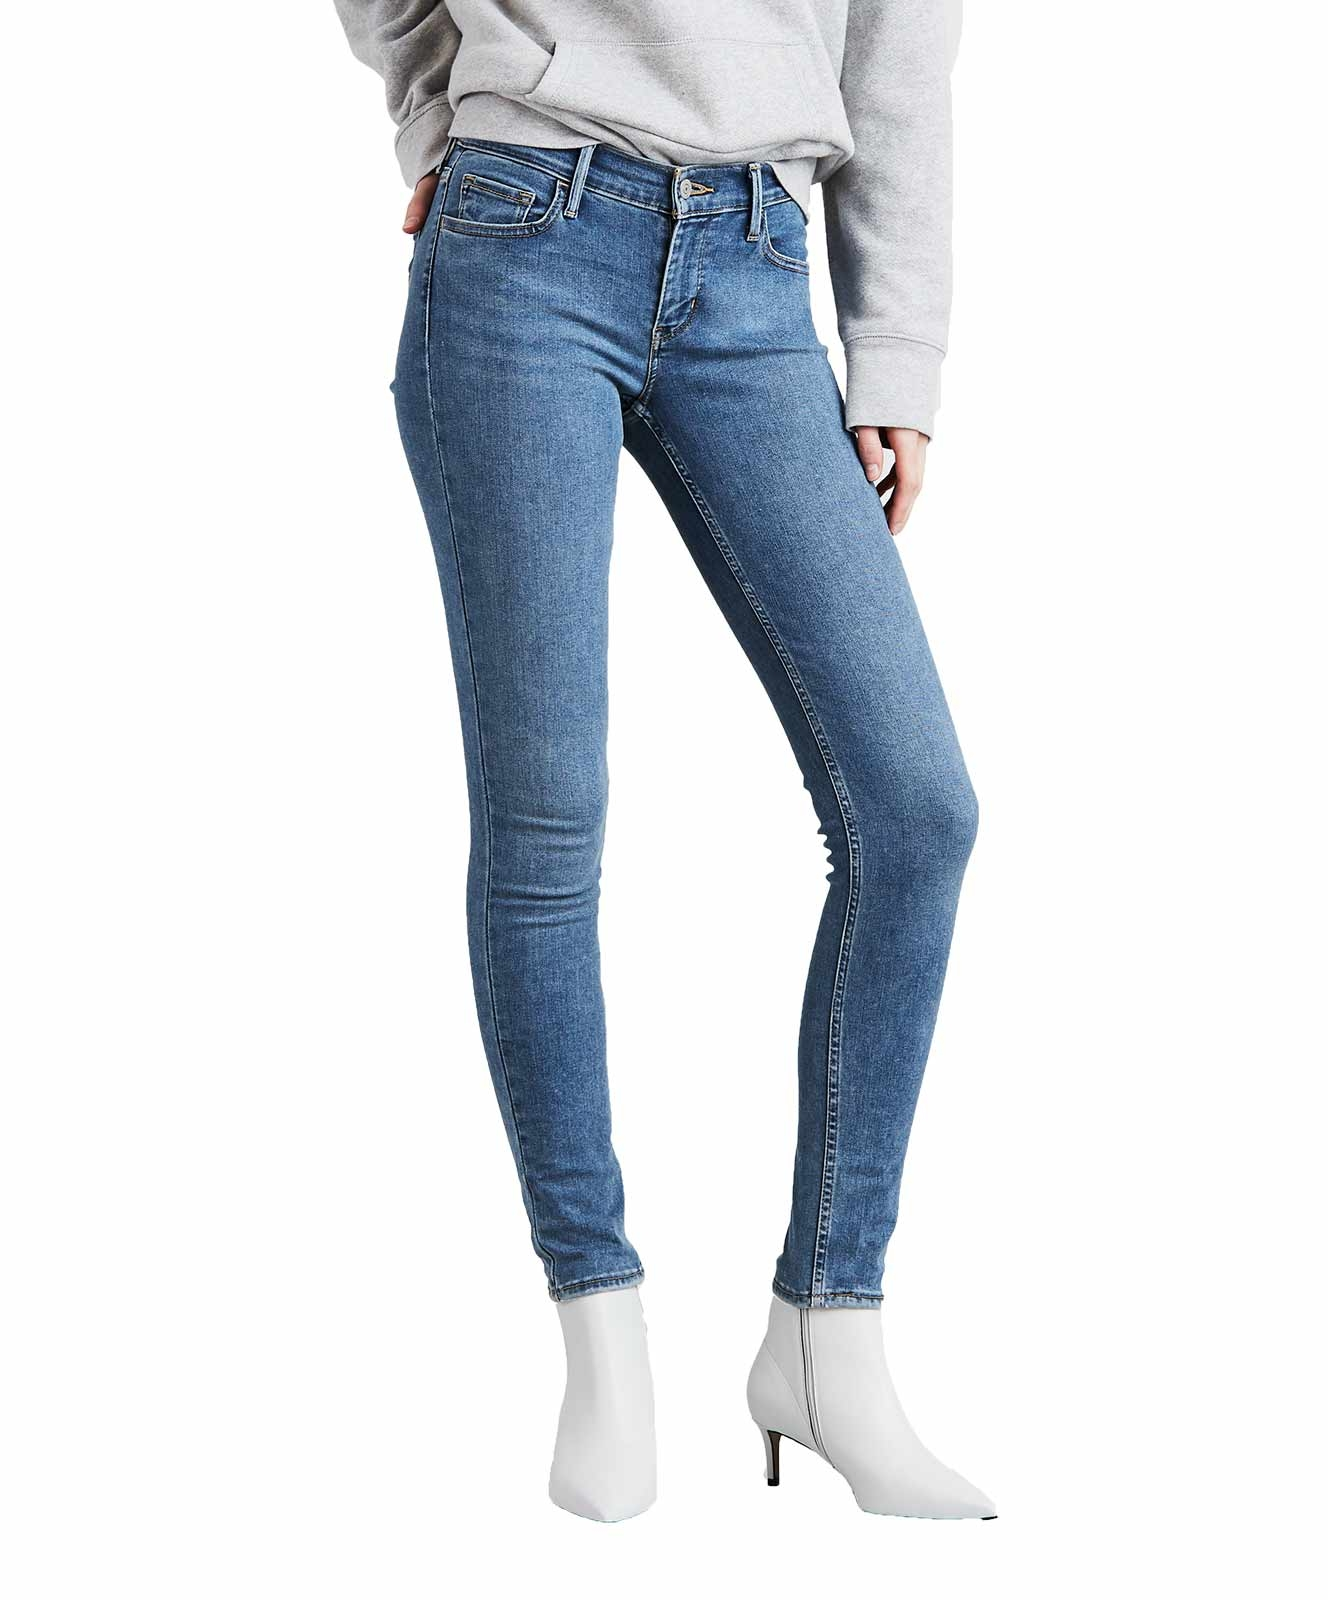 Hosen - LEVI'S 710 Skinny Jeans Chelsea Angels  - Onlineshop Jeans Meile